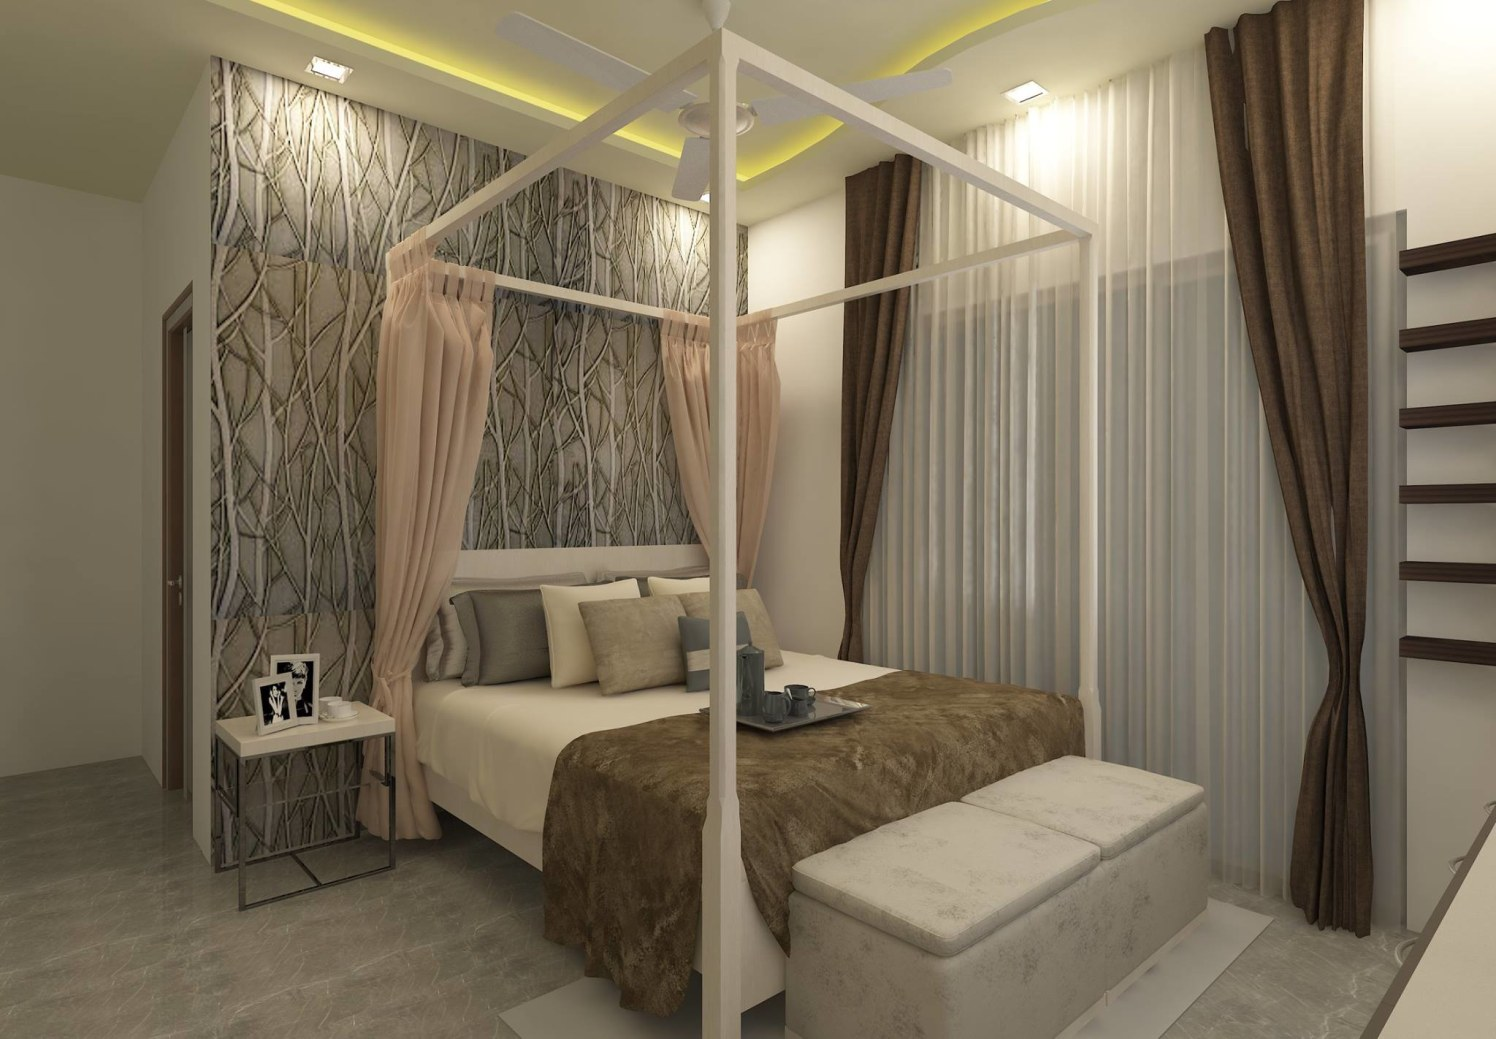 Brown Shaded Bedroom With Wall Art by Regalias Interiors Bedroom Contemporary | Interior Design Photos & Ideas